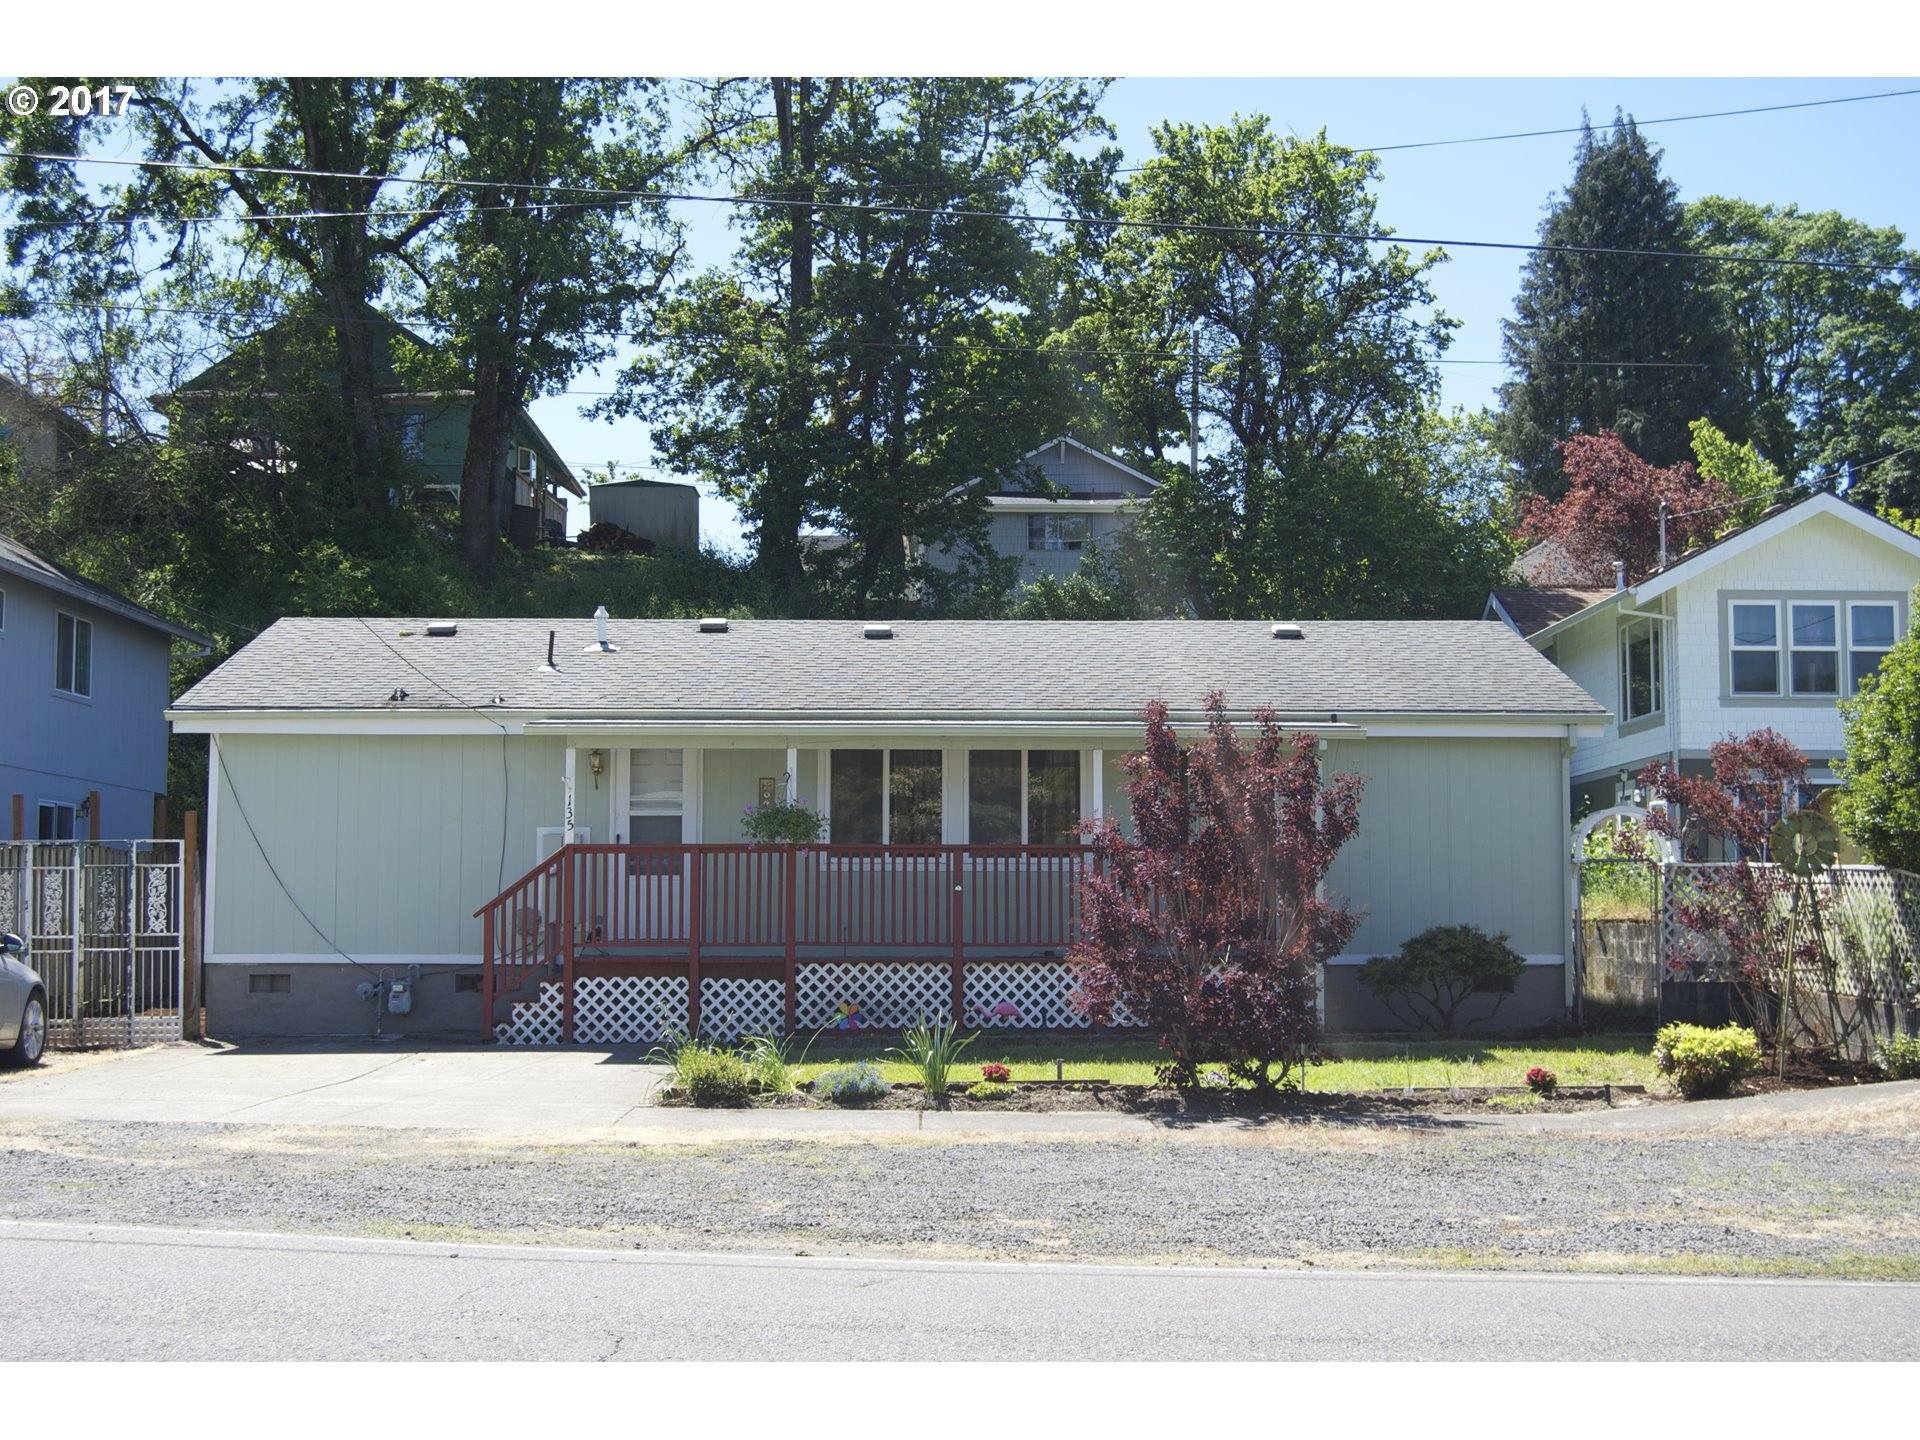 135 7TH ST, St. Helens, OR 97051